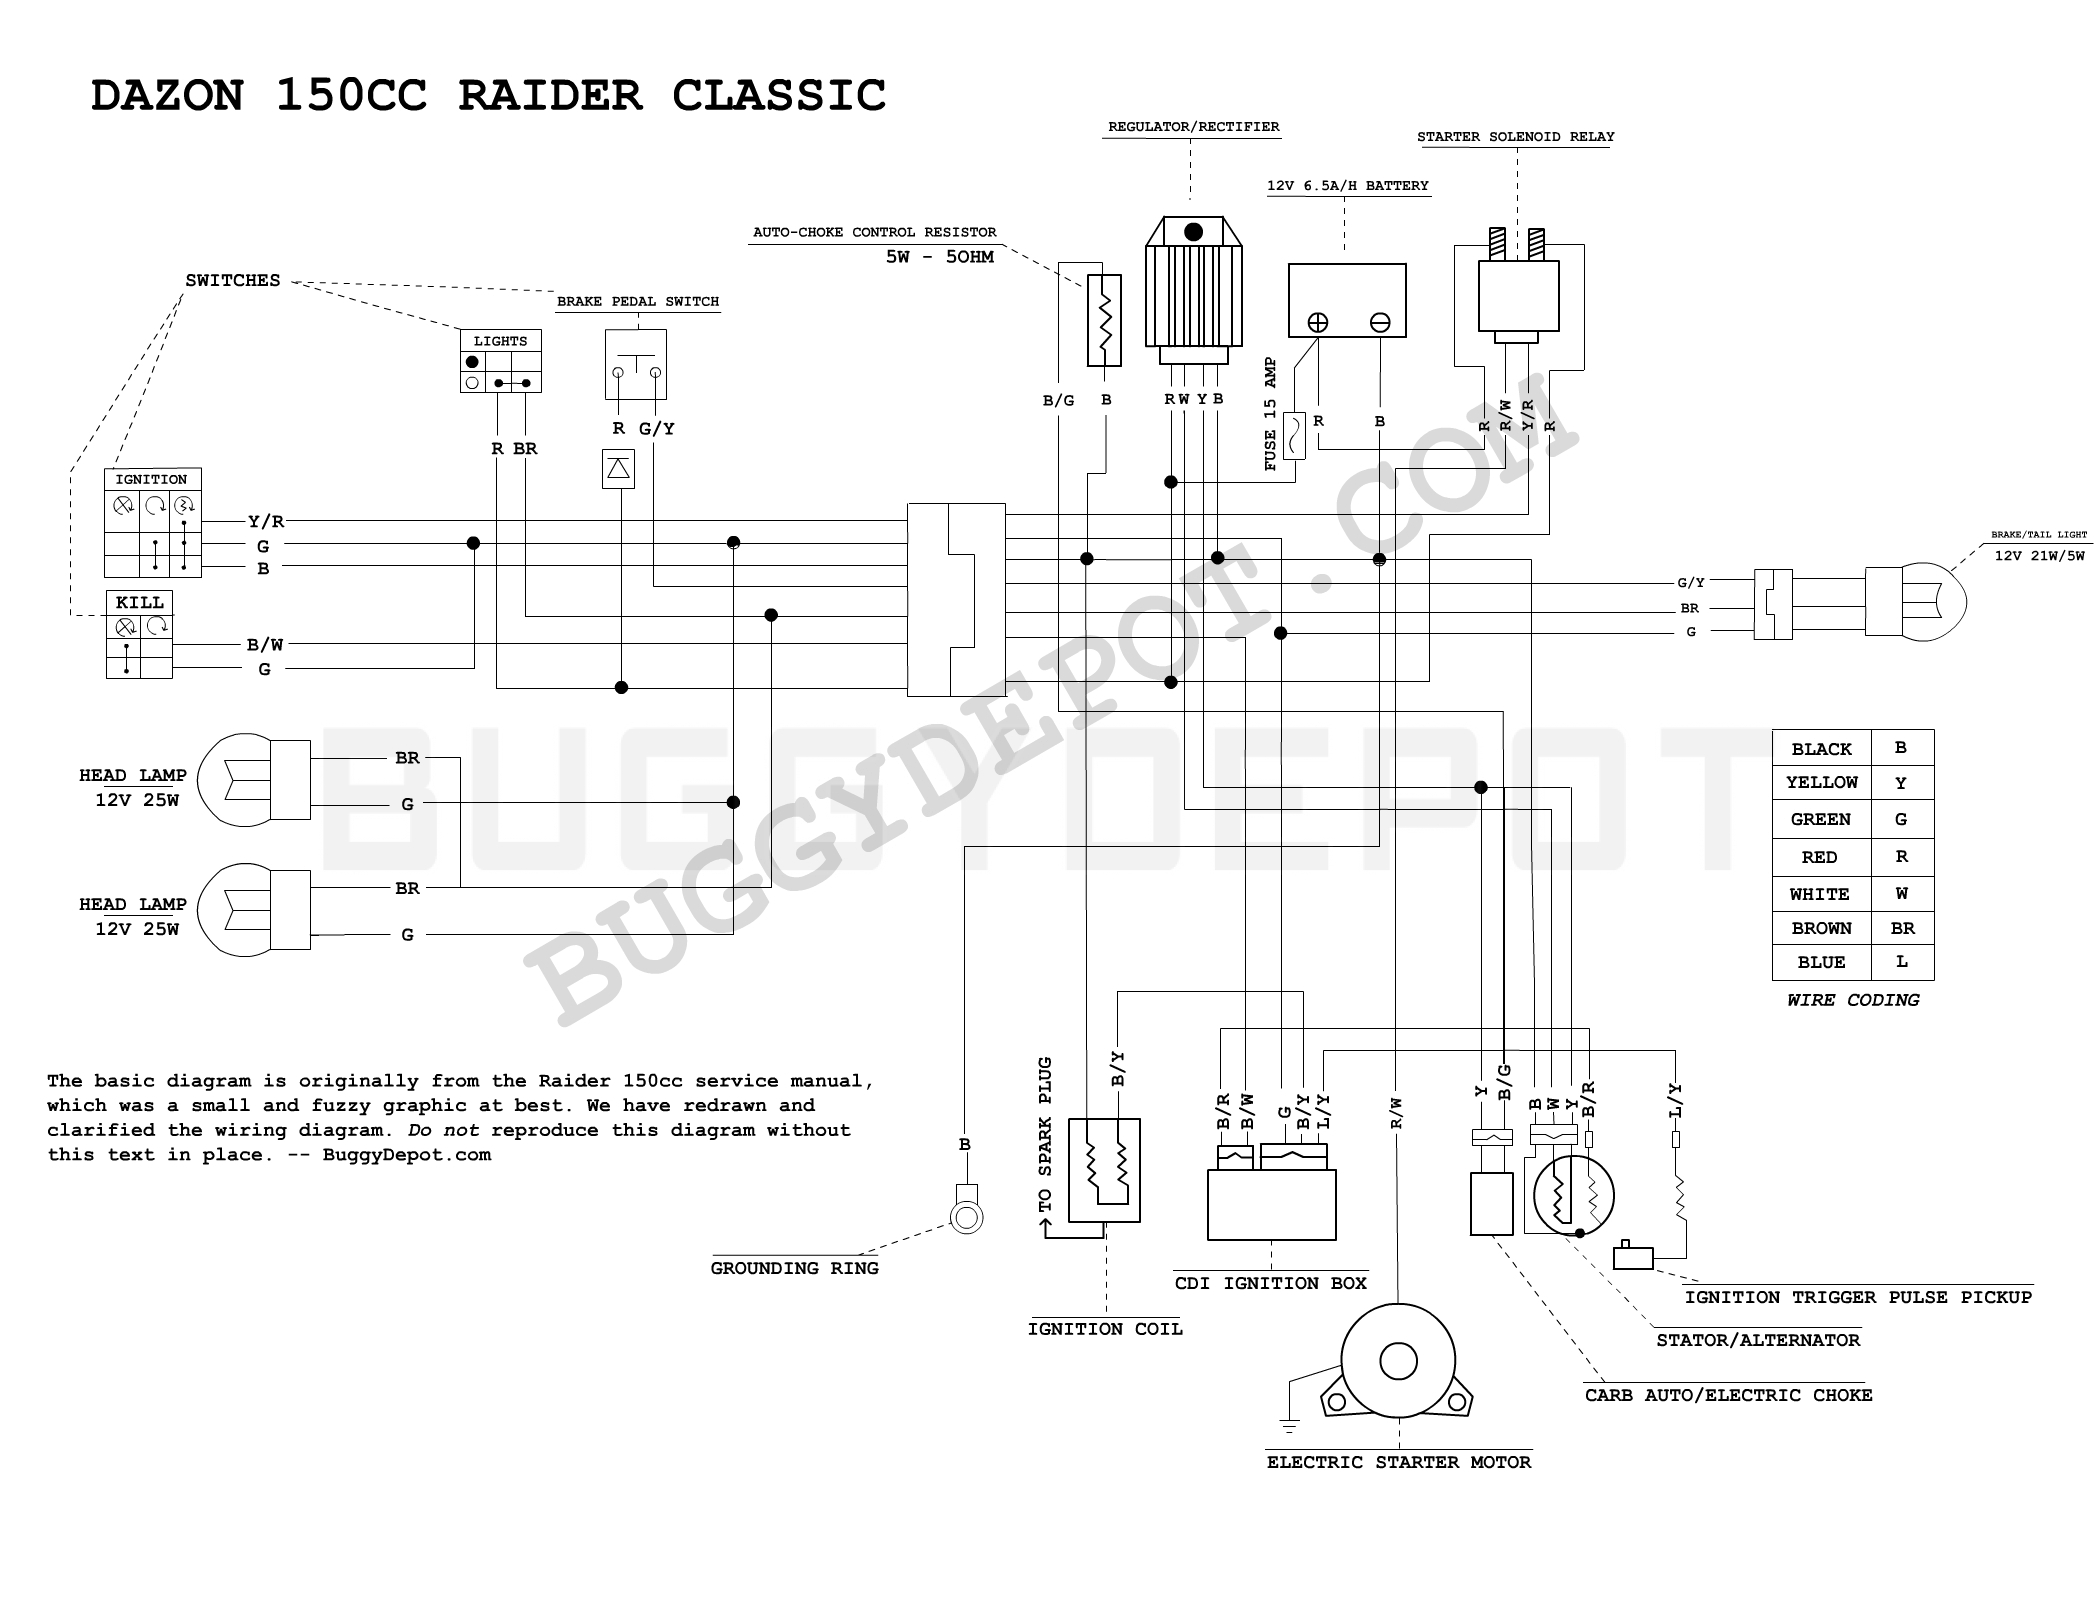 article_33_1278205207 dazon raider classic wiring diagram buggy depot technical center Chinese 90Cc ATV at eliteediting.co